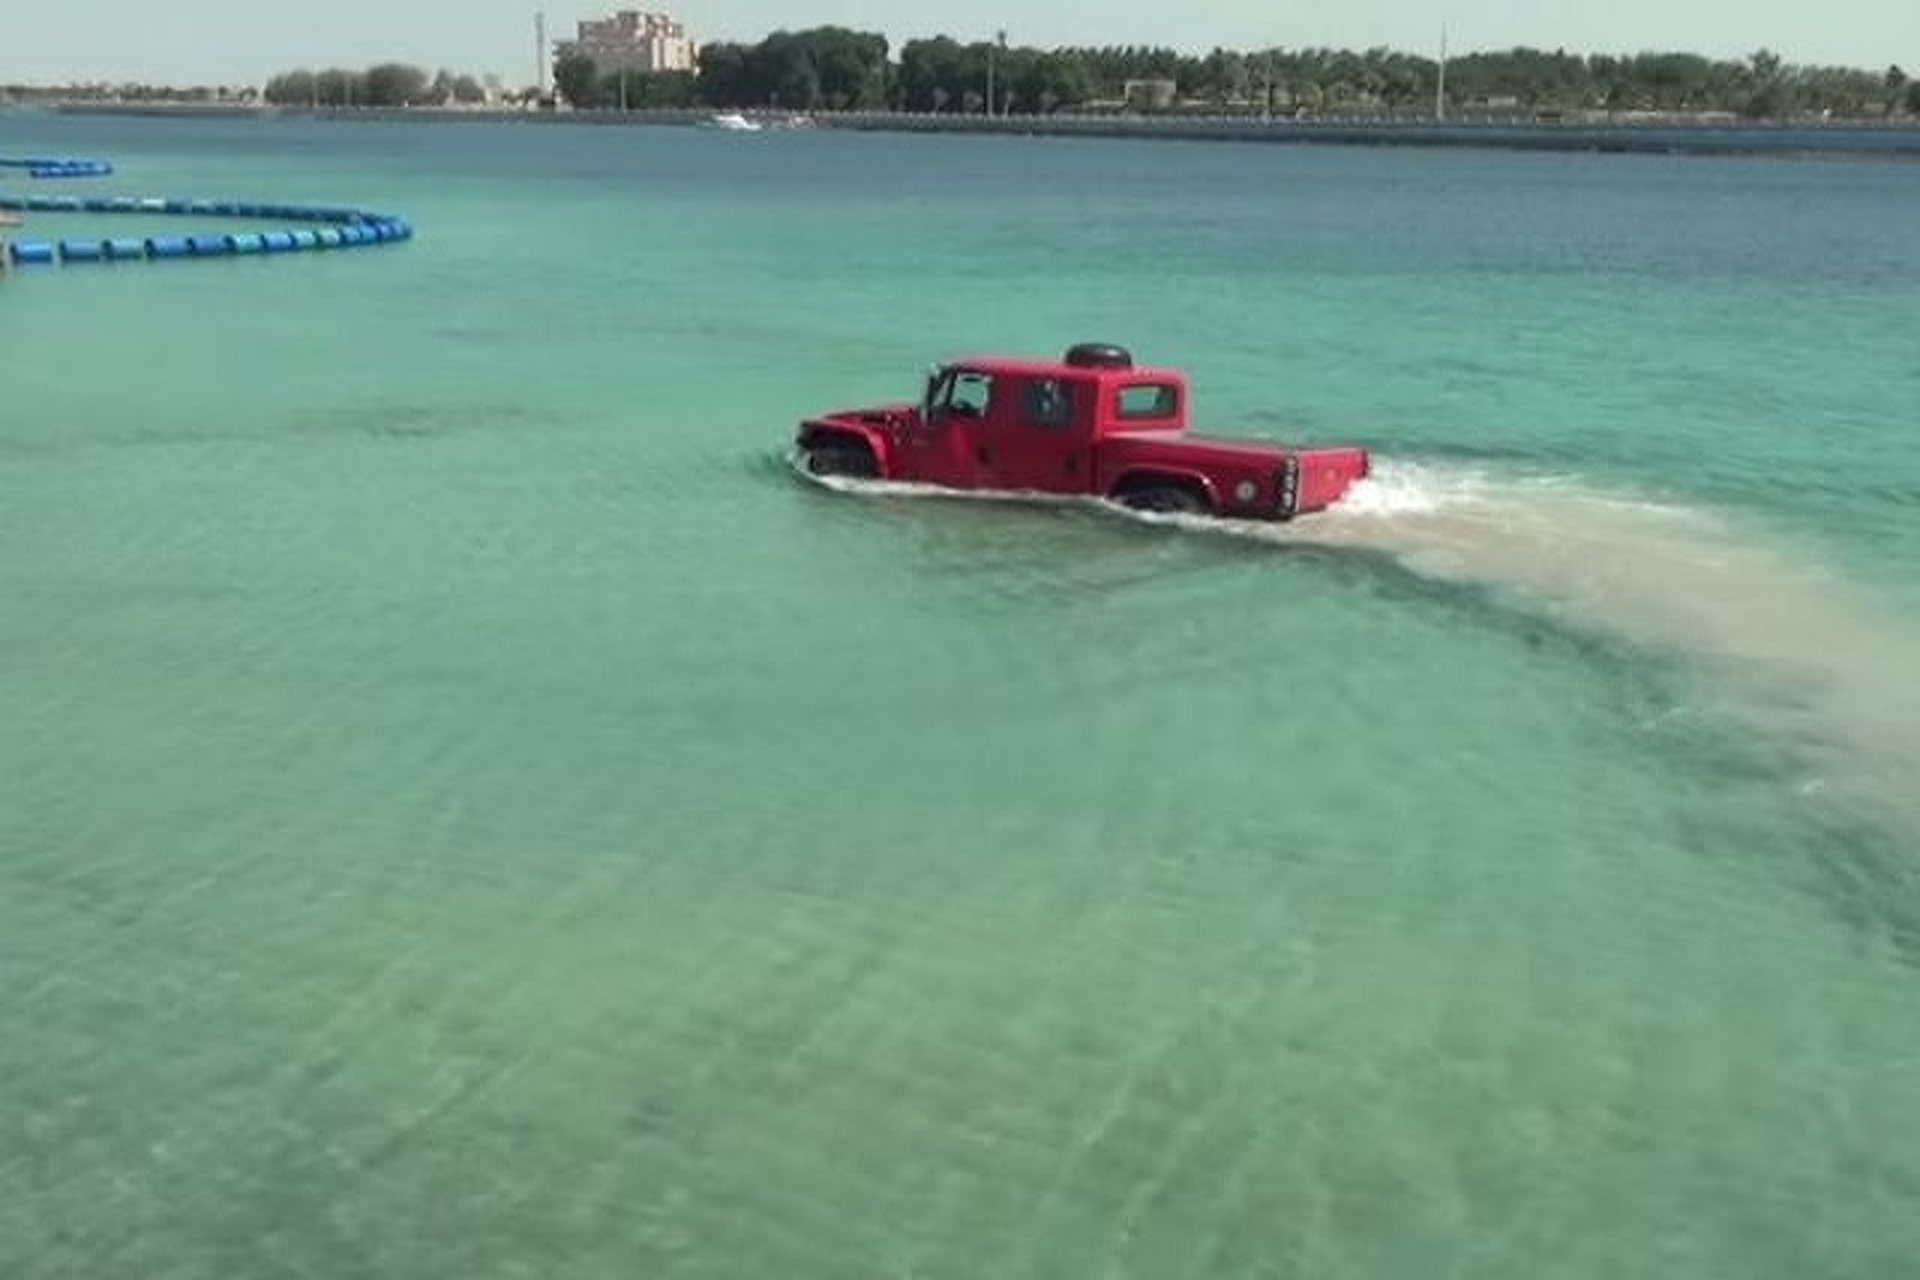 Watch This Tough Truck Drive into the Ocean Intentionally